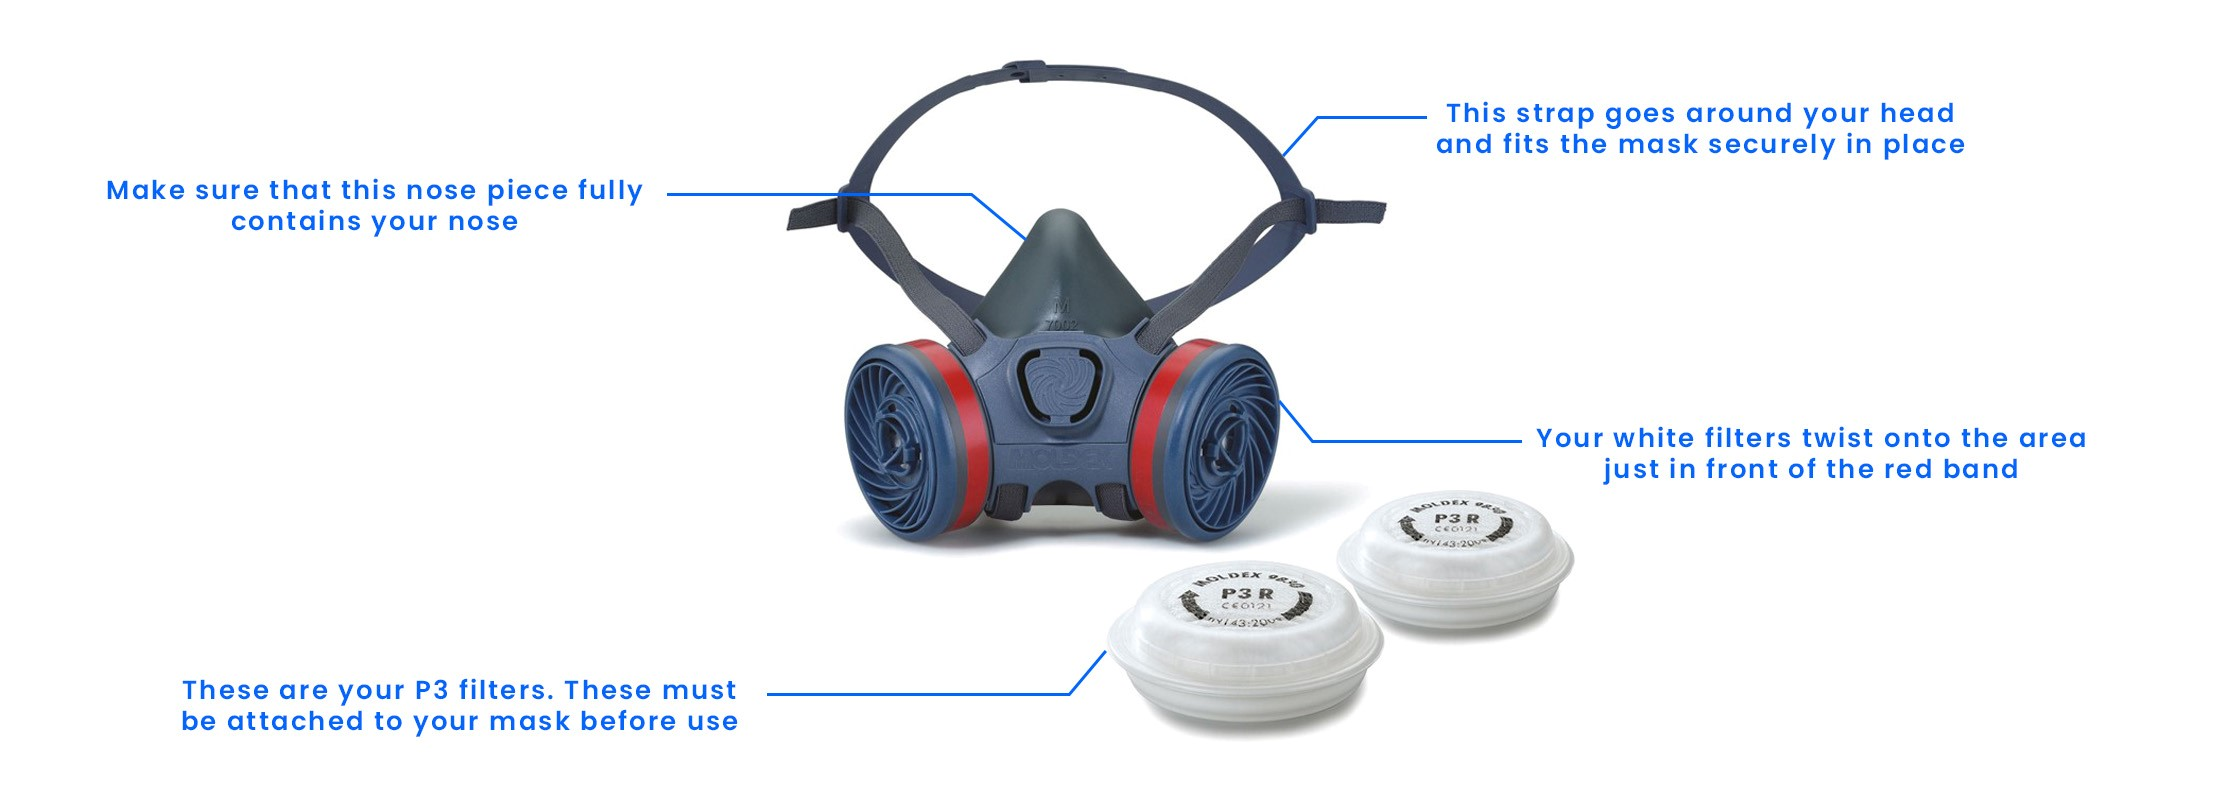 Our Guide on the Moldex Masks and P3 Filters